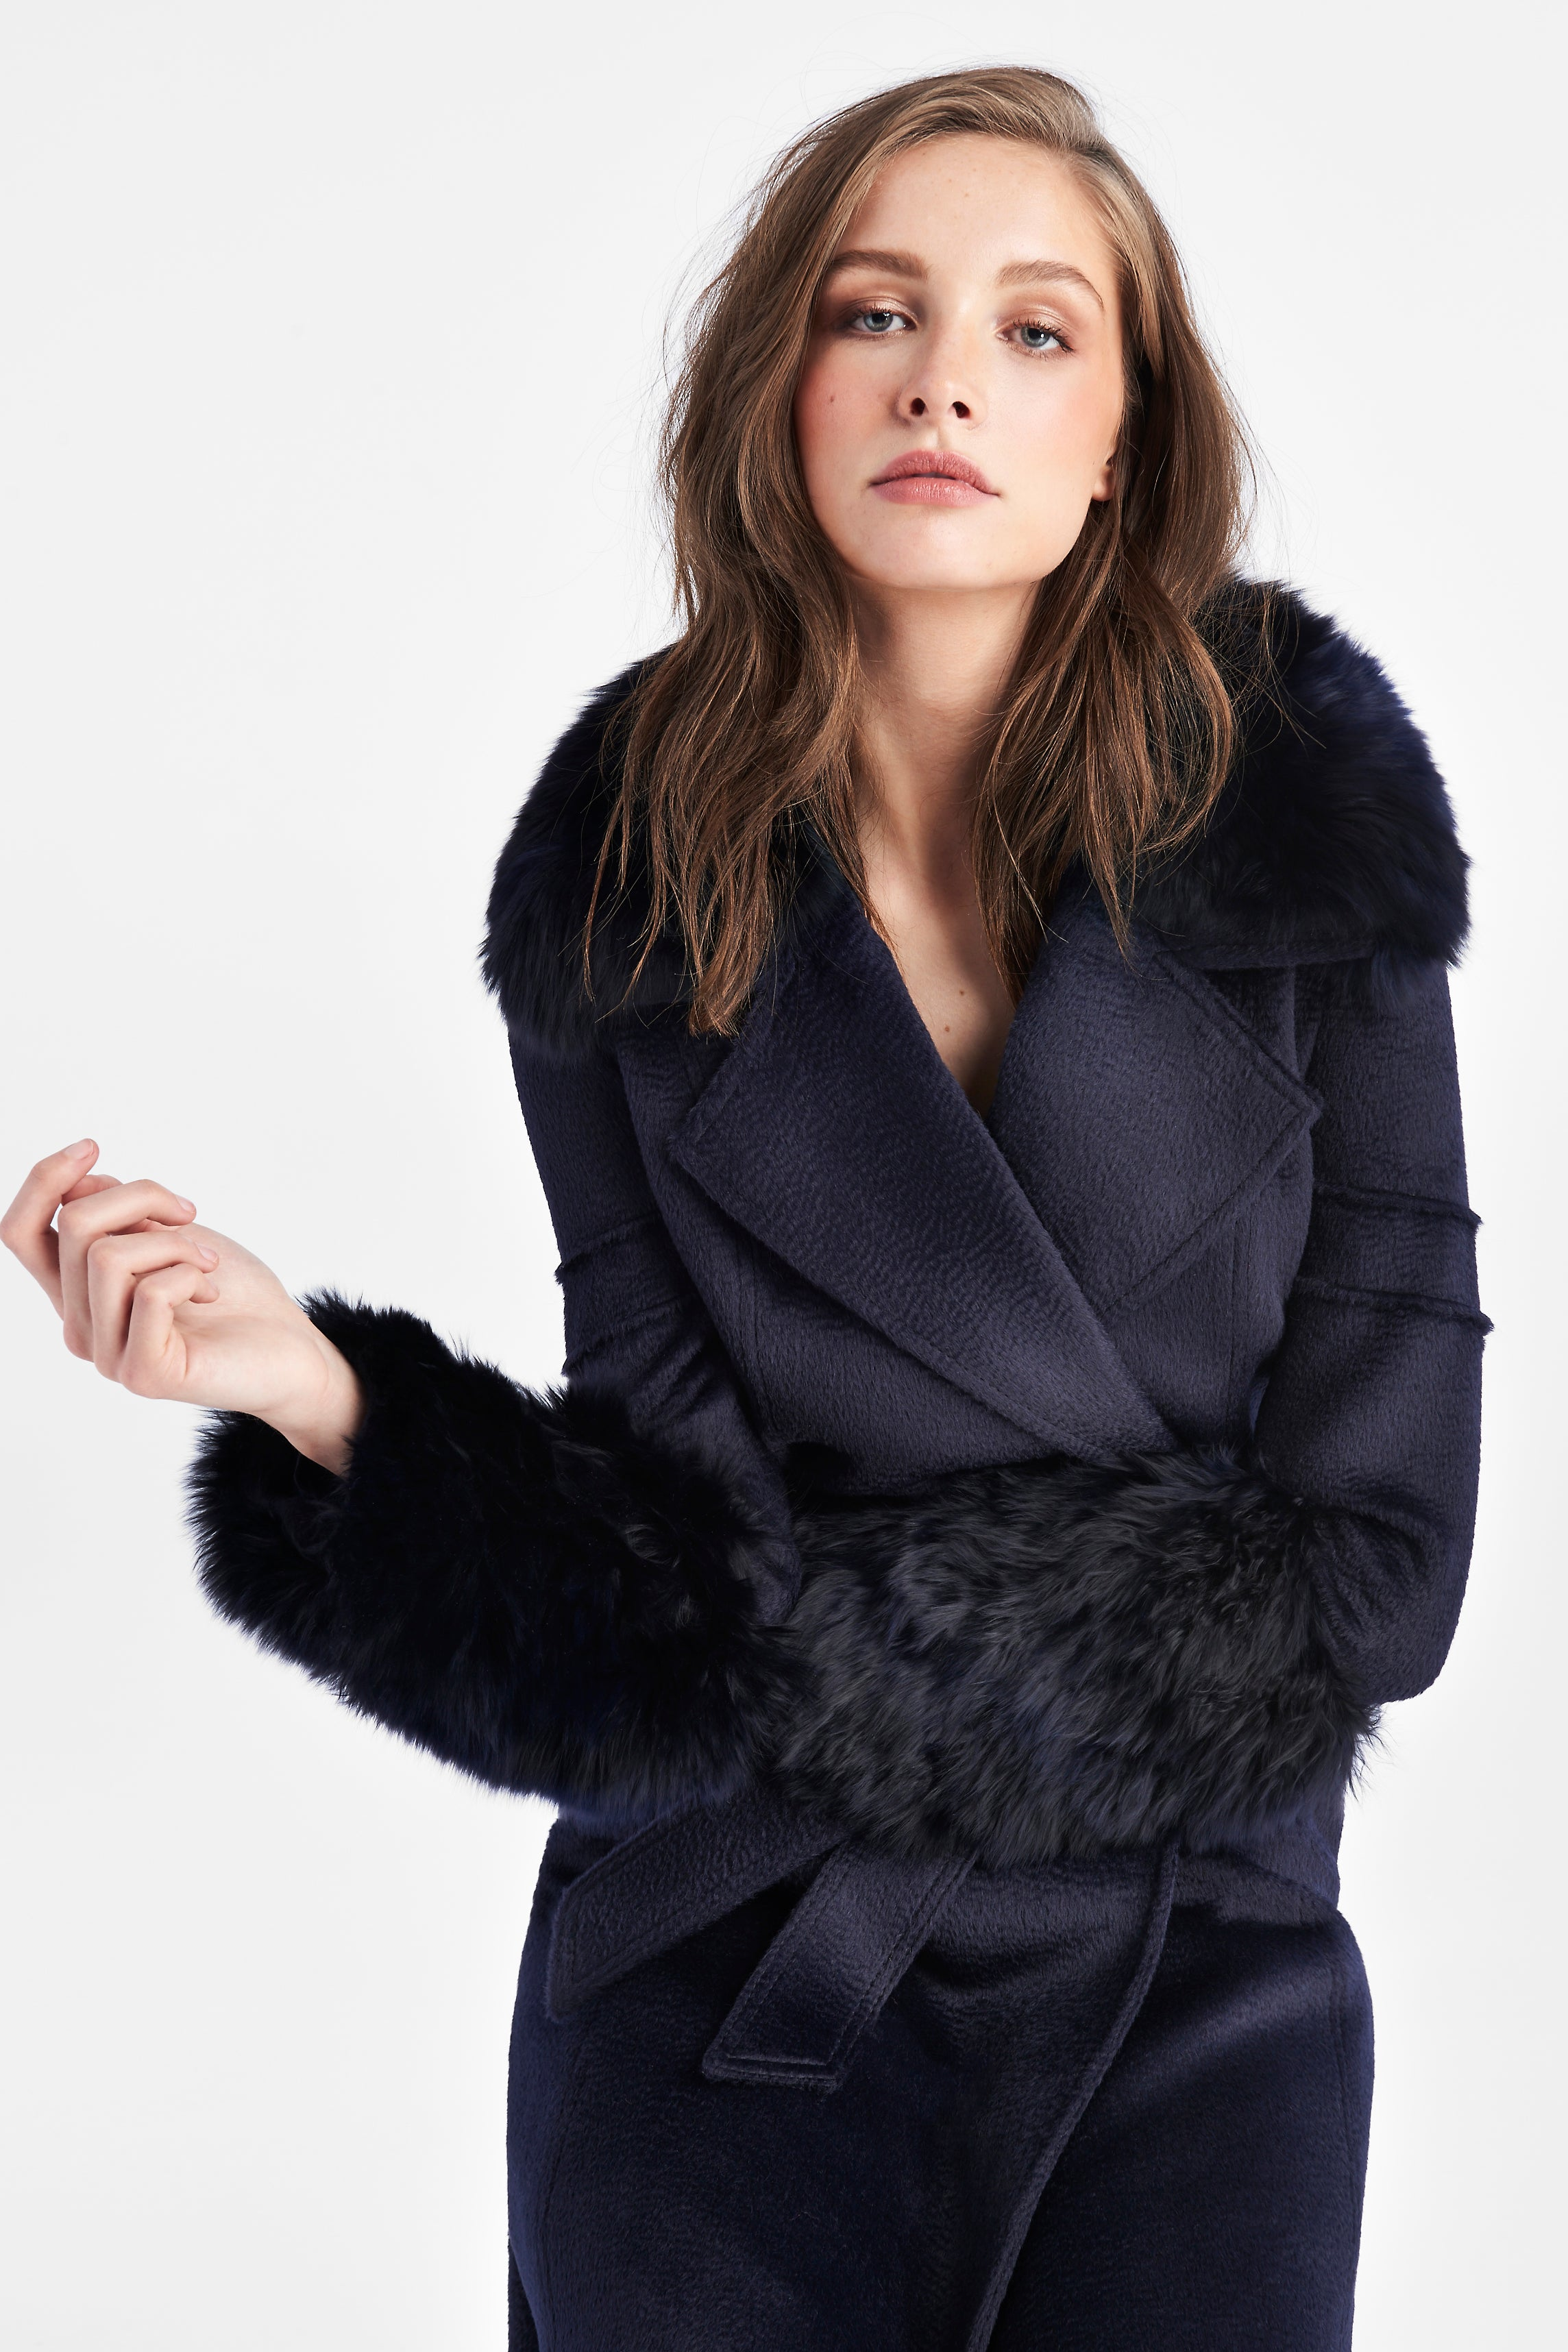 Notched Collar Wrap Coat with Fur Collar and Cuffs